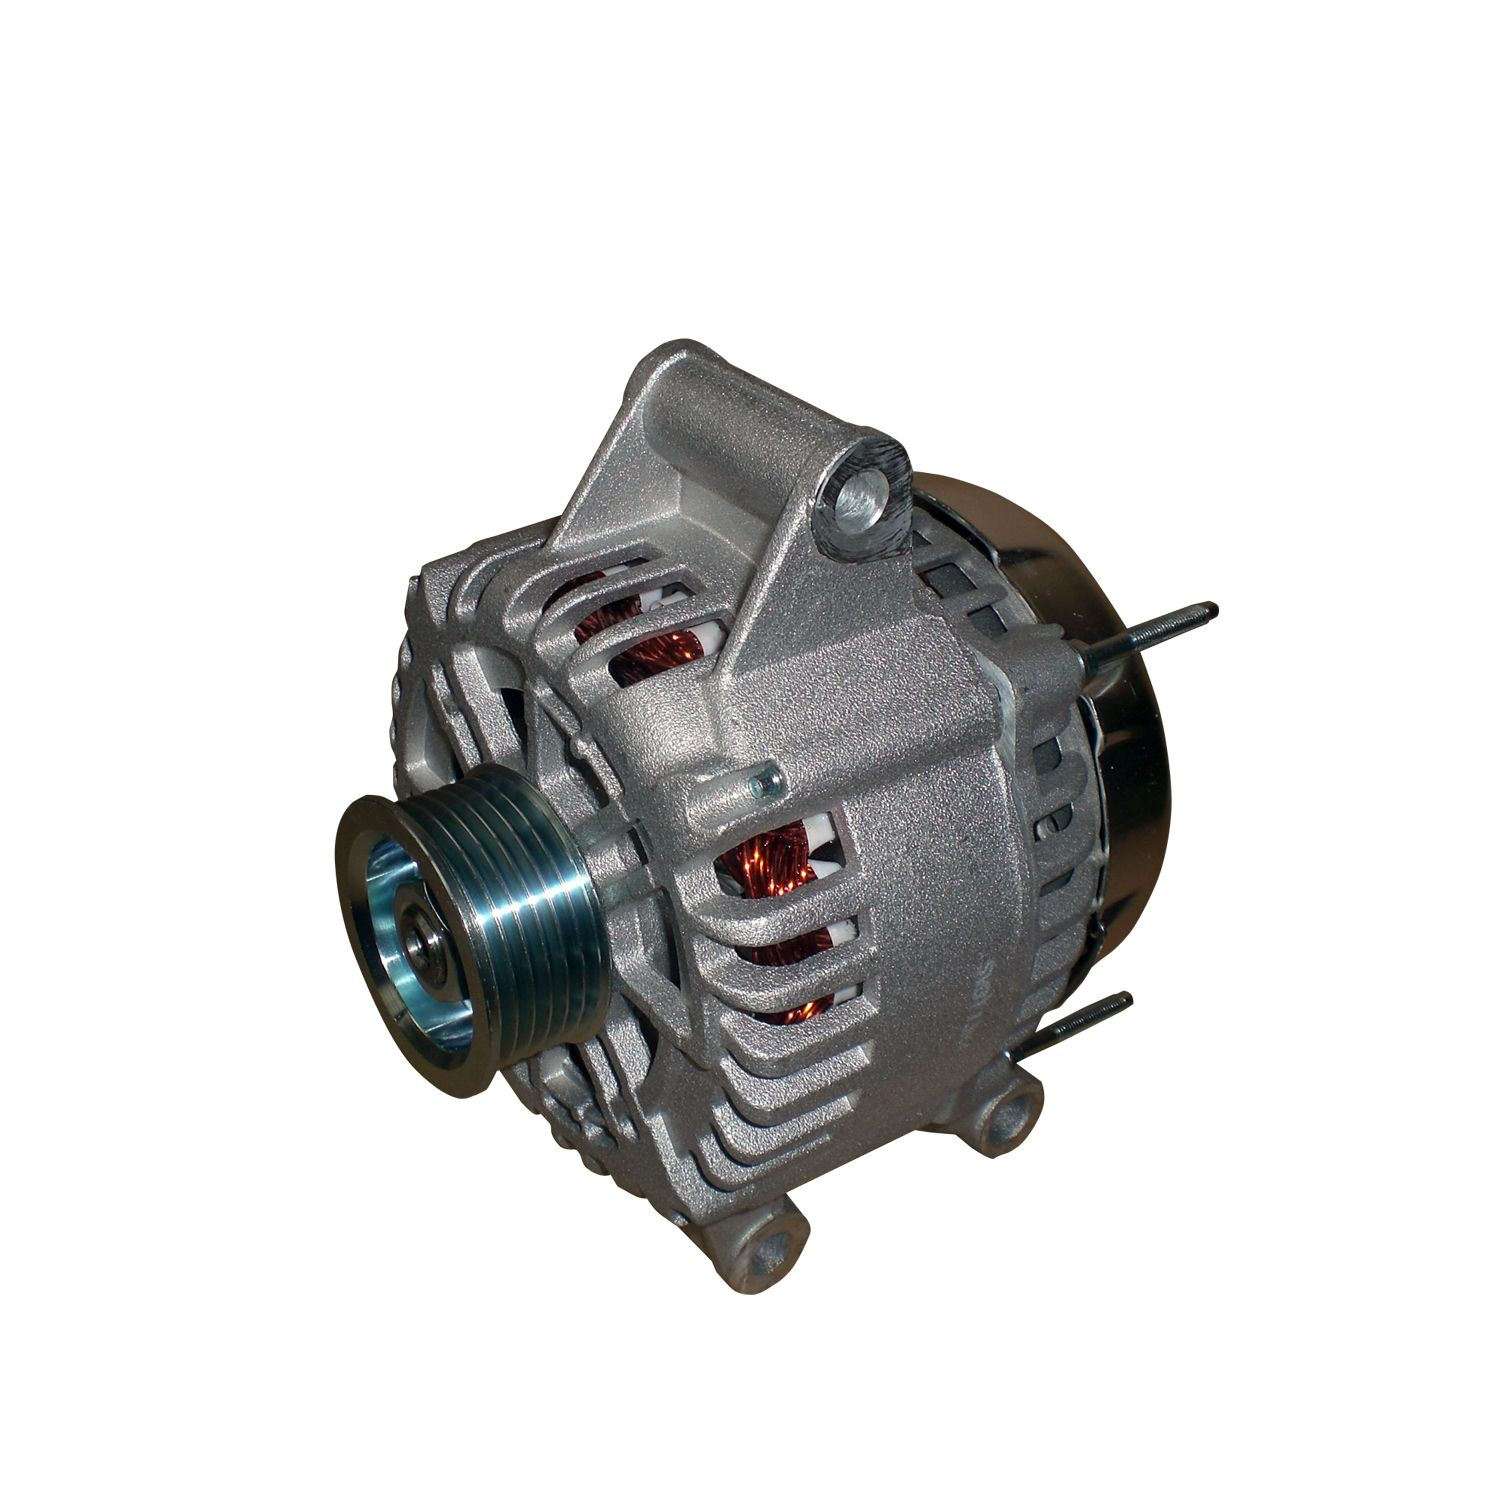 Tyc 2 08440 Alternator For 2003 2004 Ford Focus Walmart Com Walmart Com